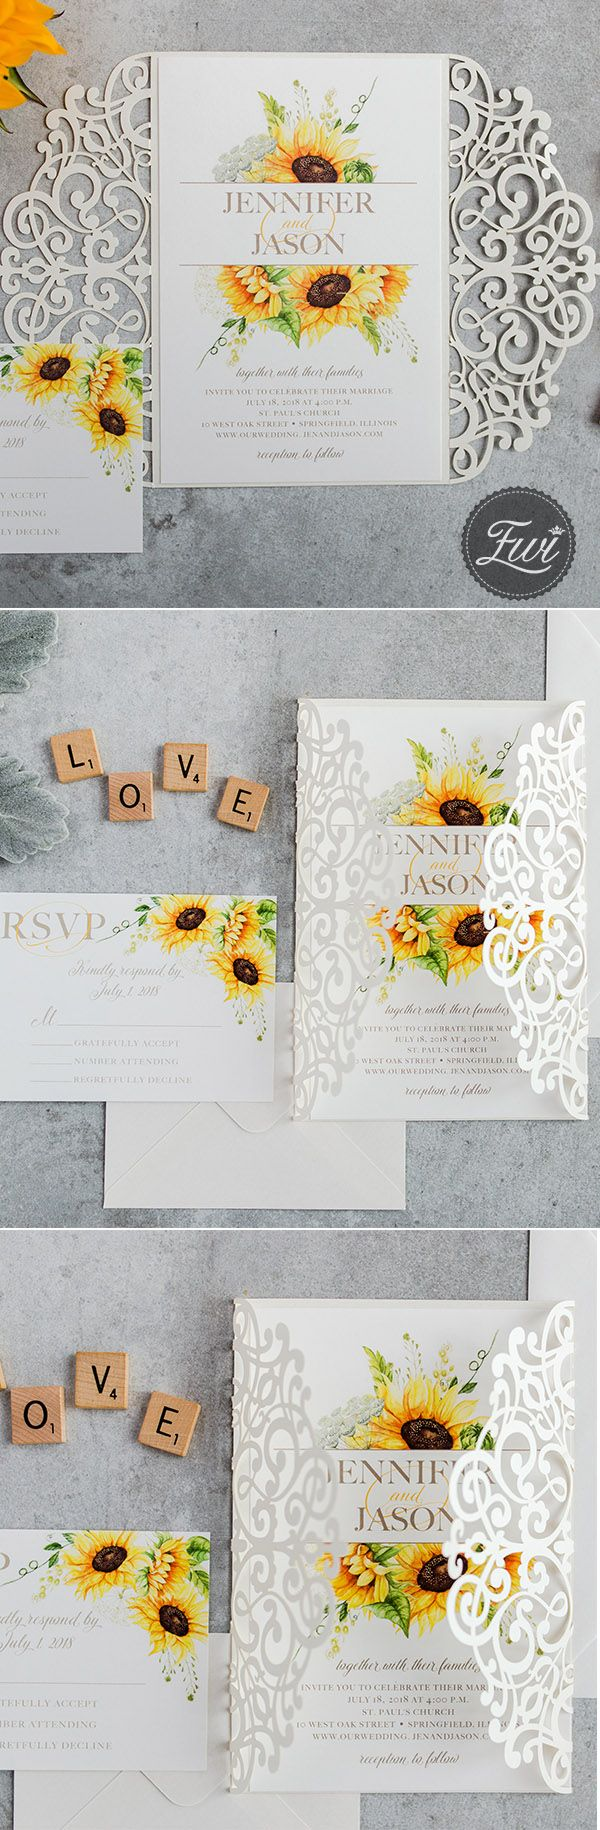 Graceful sunflower rustic wedding invitation with white laser cur wrap.#sunflower #weddings #invitations #rustic